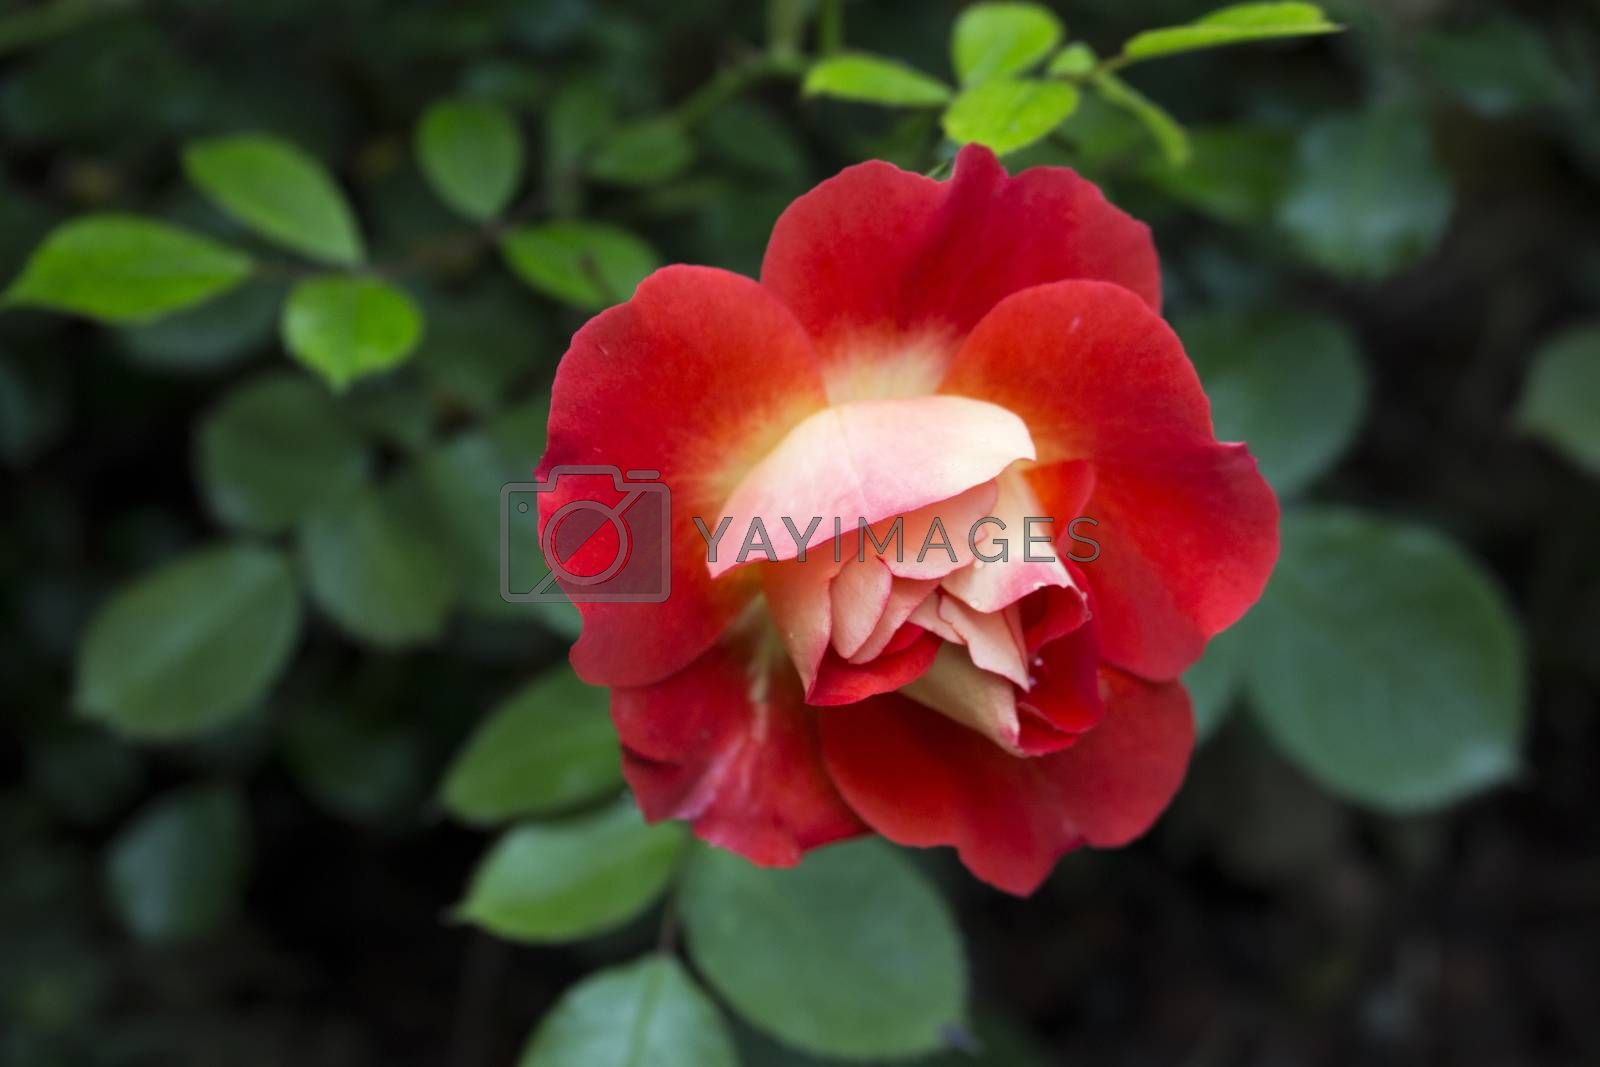 Red and white rose with deep green leaves